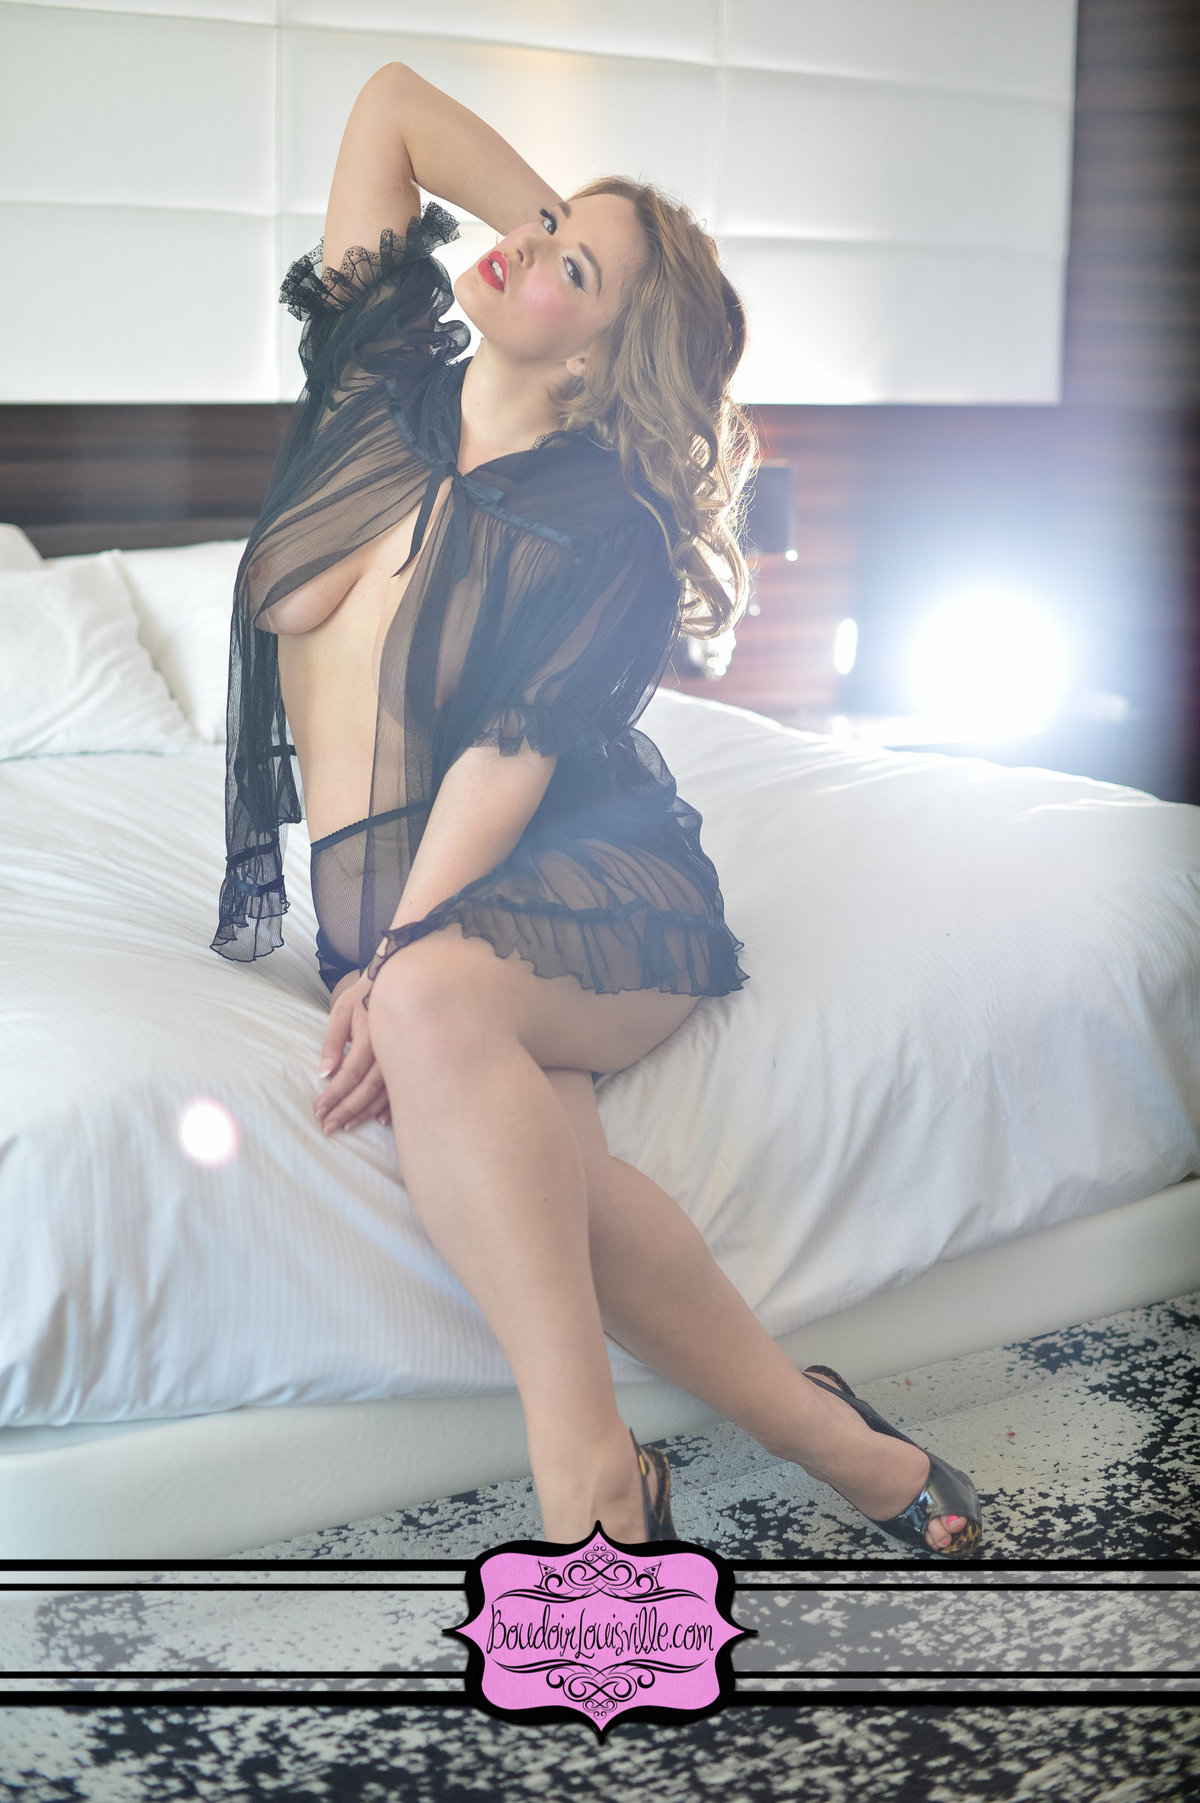 Boudoir Louisville - On Location Boudoir Photo ShootsPhotographers-48